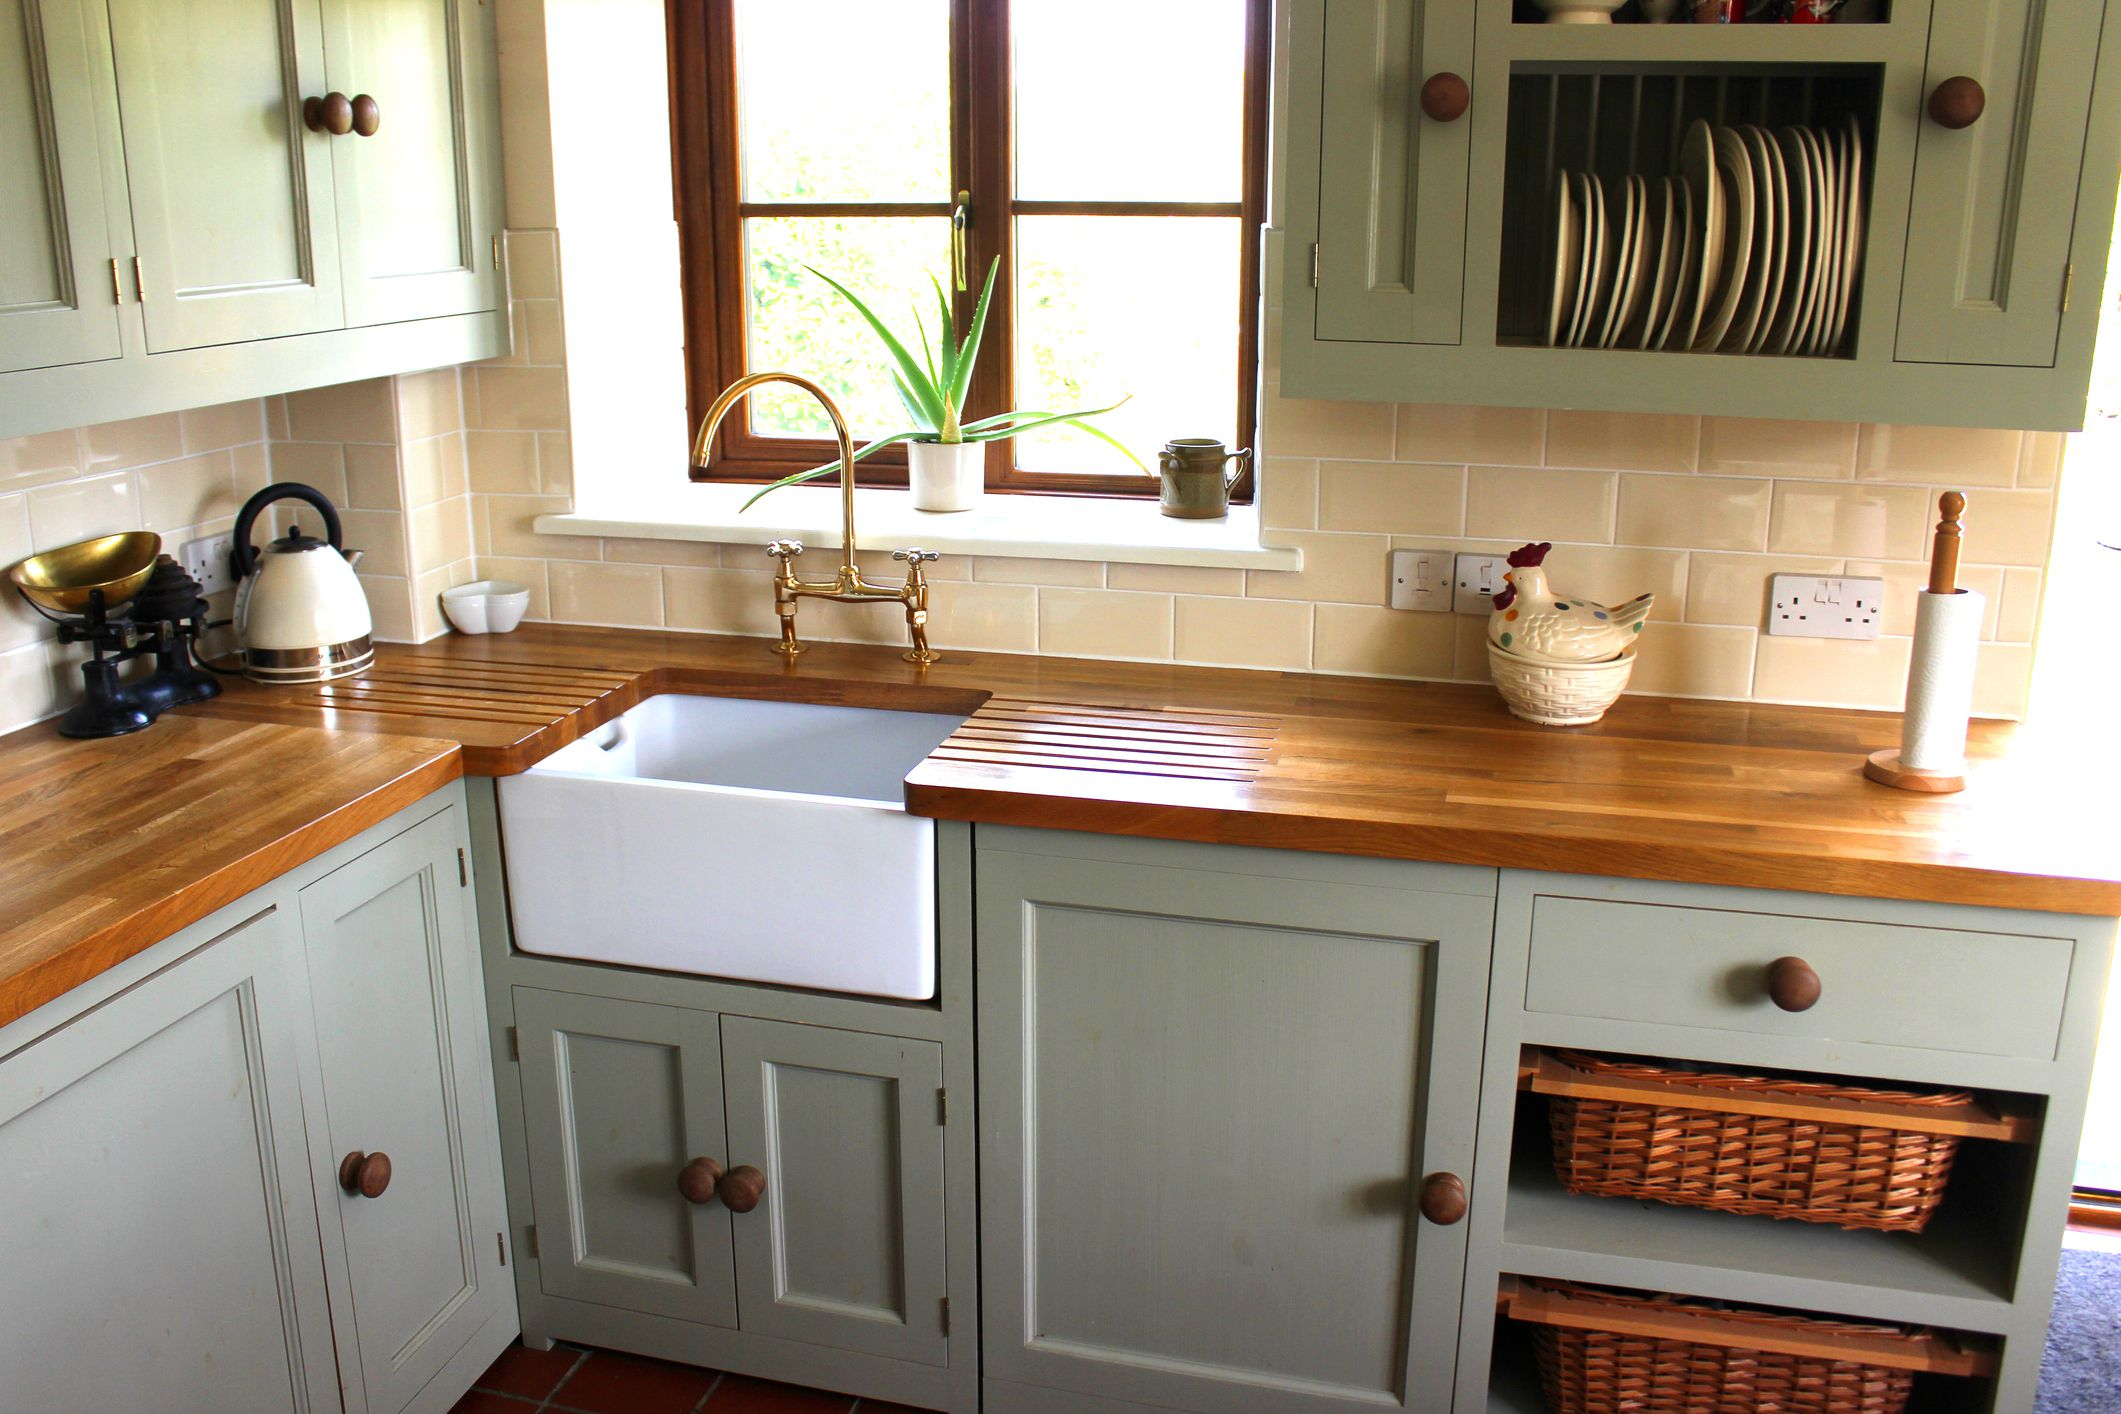 Farmhouse Sinks For Kitchens